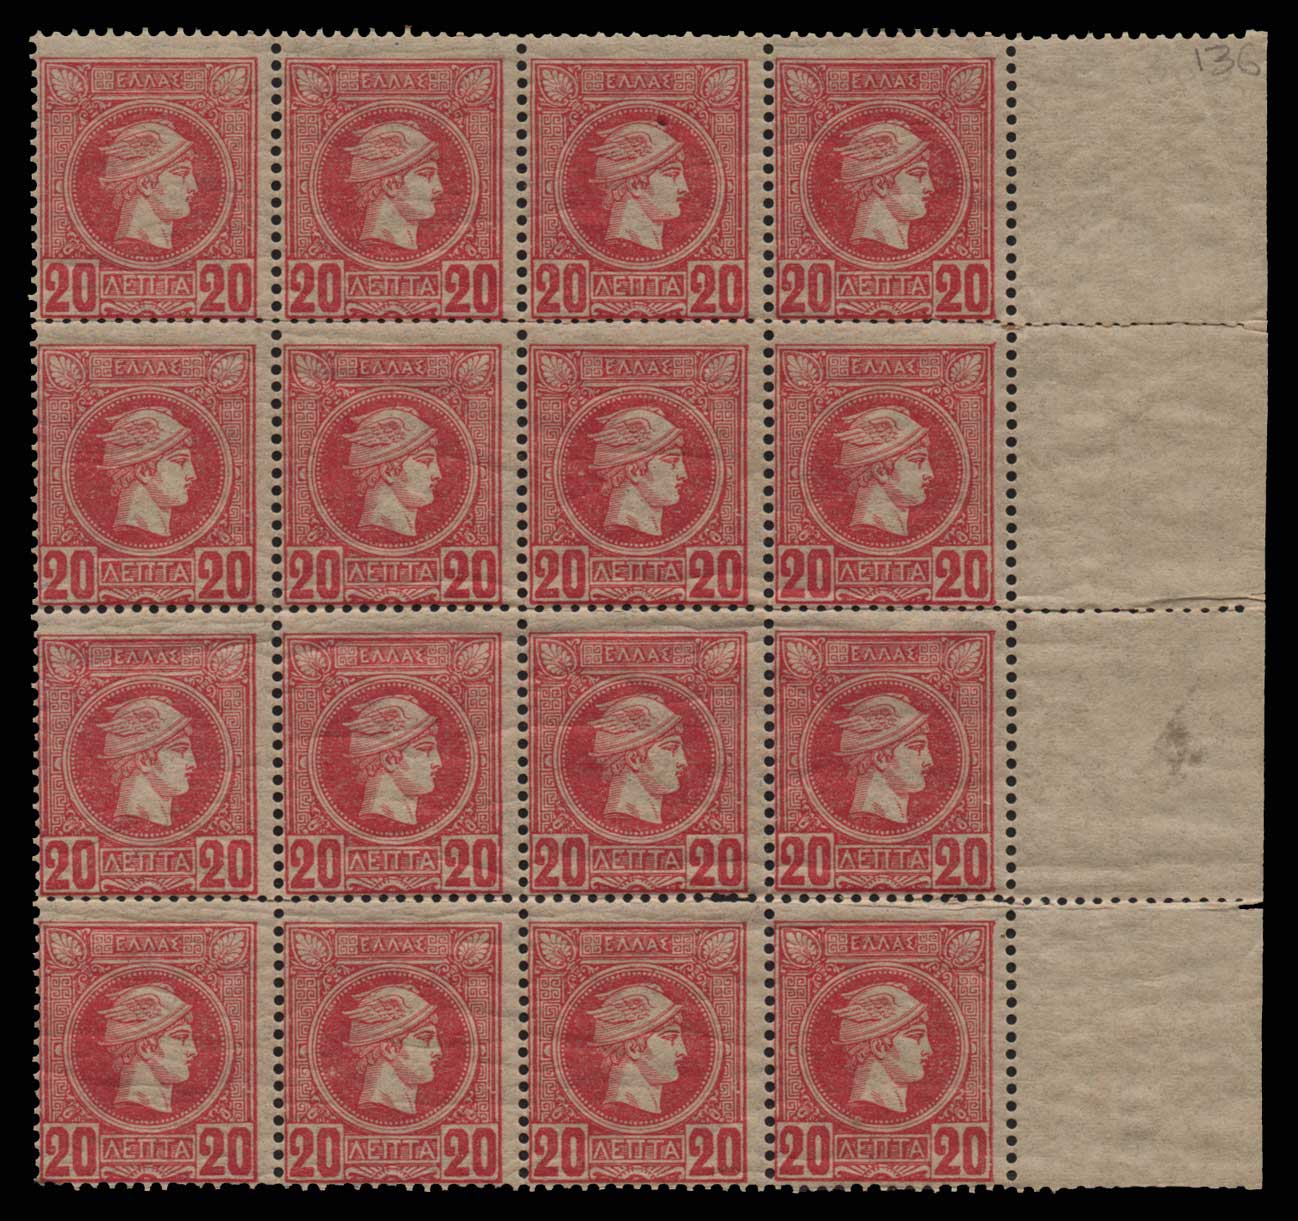 Lot 423 - -  SMALL HERMES HEAD ATHENSPRINTING - 1st PERIOD -  Athens Auctions Public Auction 75 General Stamp Sale